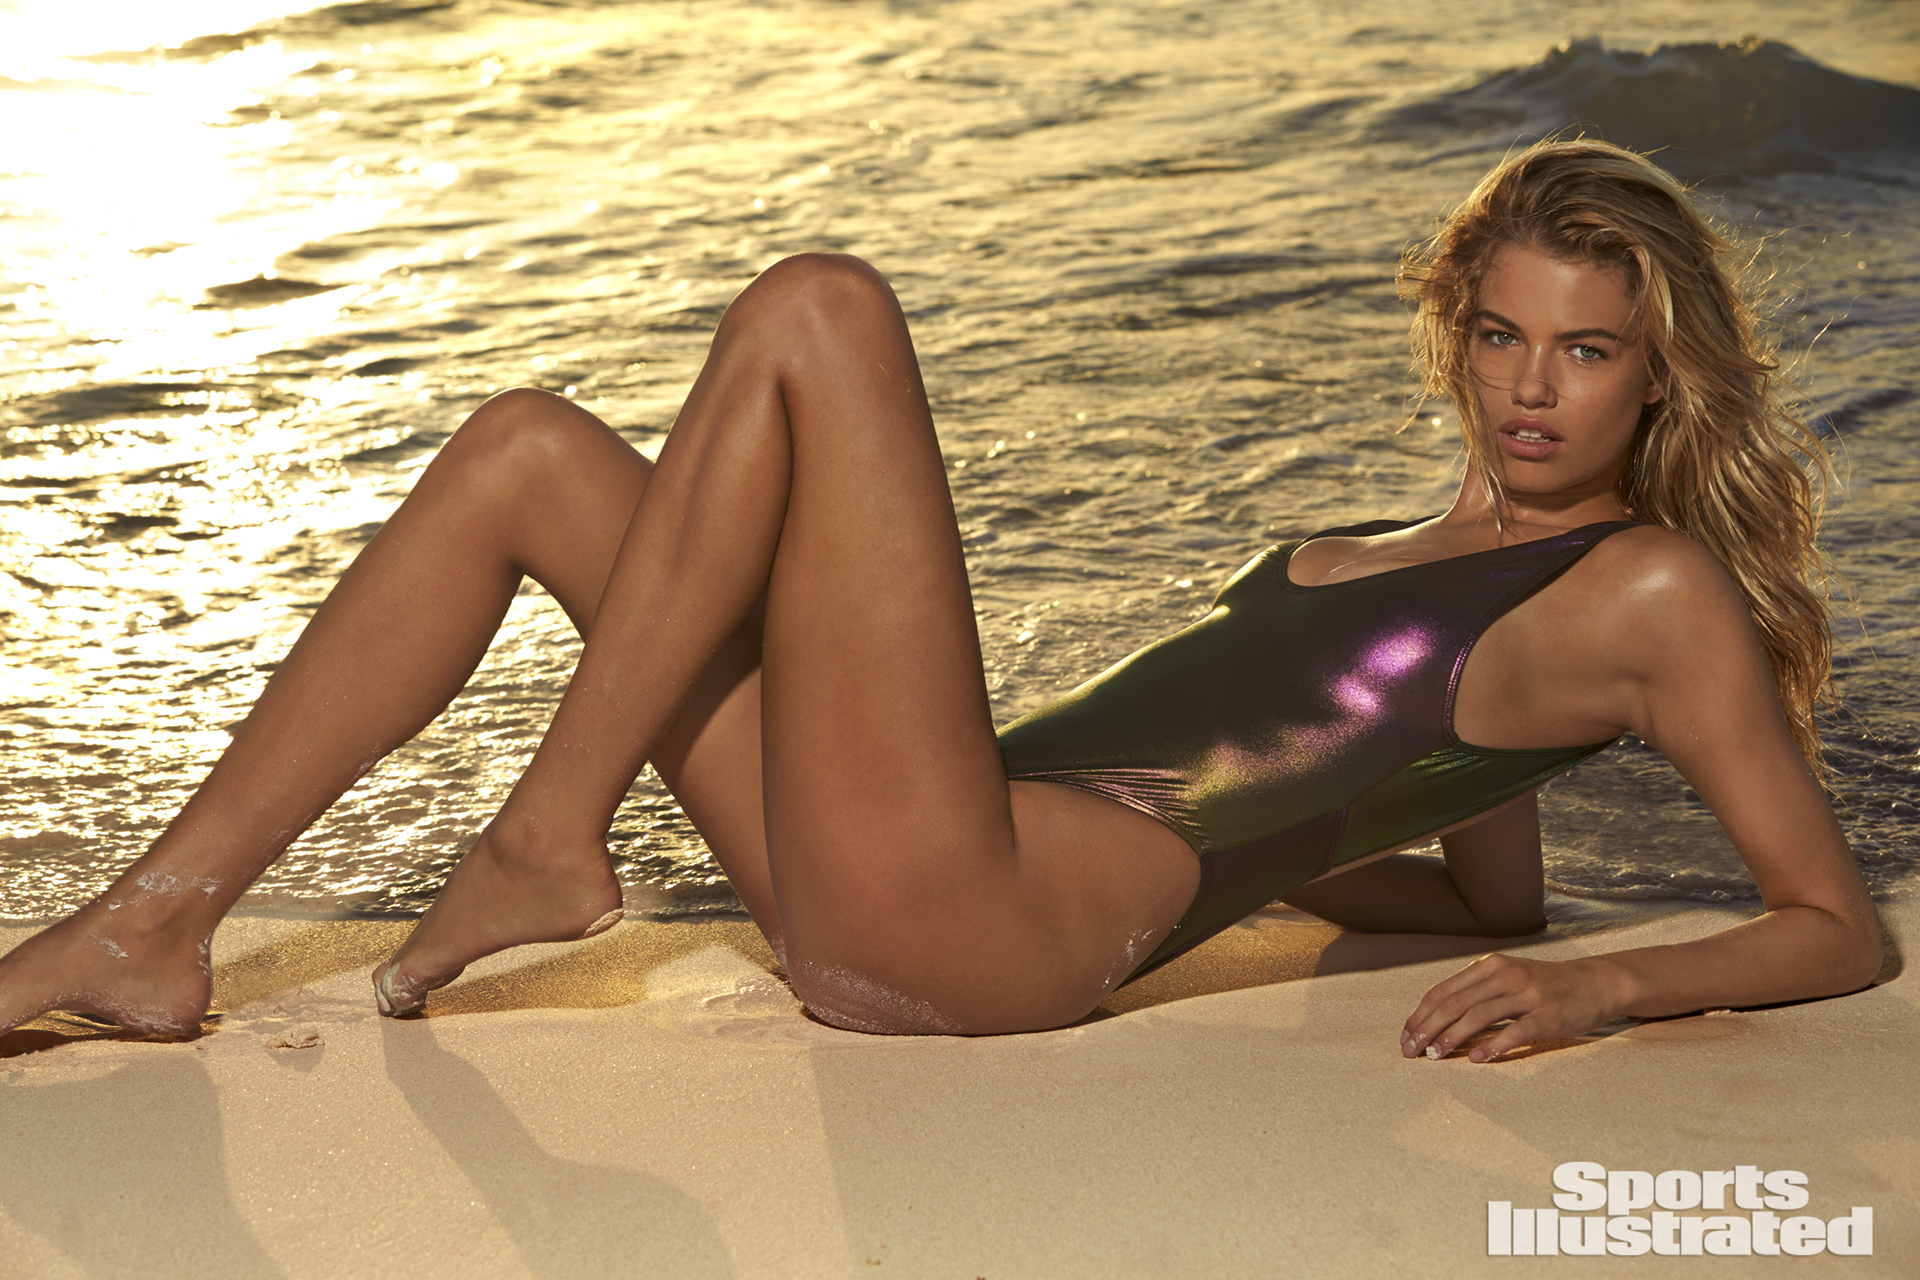 "<p>Hailey Clauson was photographed by Ben Watts in the Bahamas. Swimsuit by <a href=""https://www.swimspot.com/shop/new/sports-illustrated-rebel-plunge-front-1-pc/multi/?utm_source=si-com-swimsuit&utm_medium=referral&utm_campaign=website-links"" target=""_blank"">Sports Illustrated Swim</a></p>"